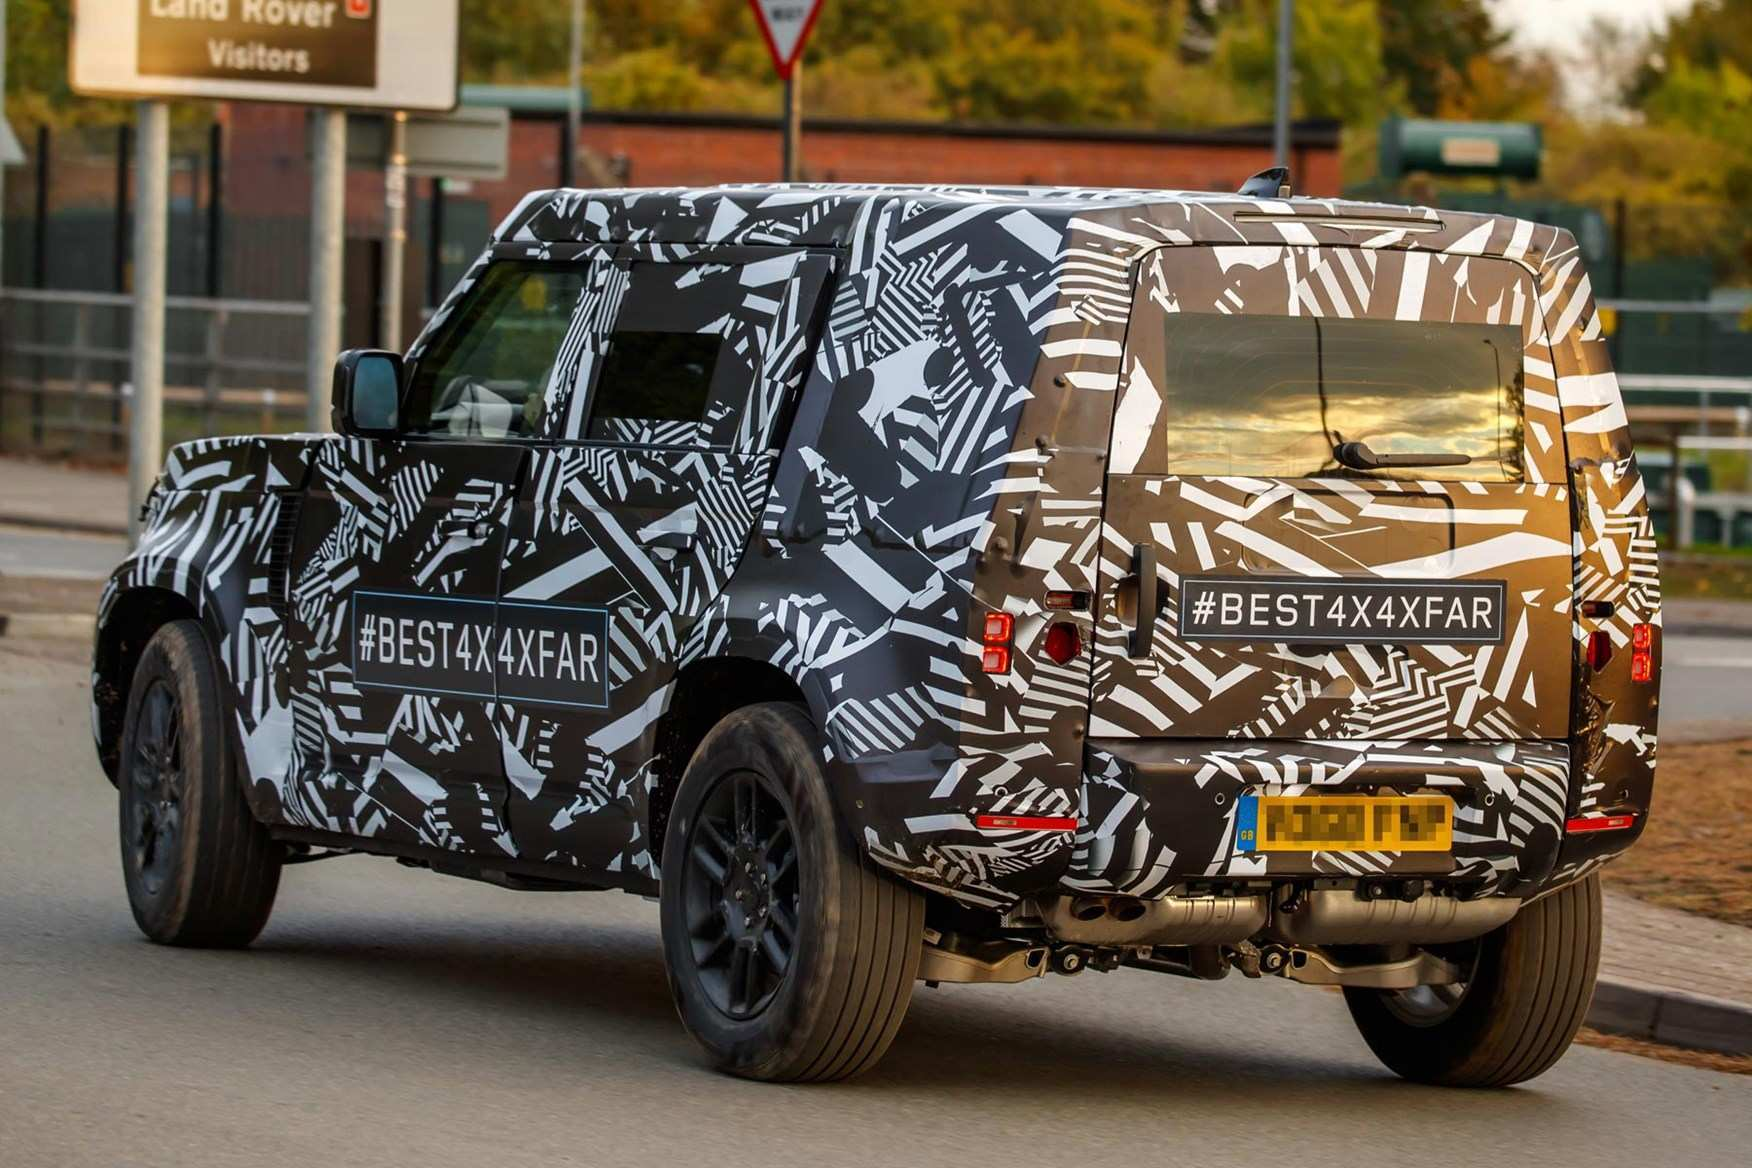 53 All New Jaguar Land Rover Defender 2020 Rumors